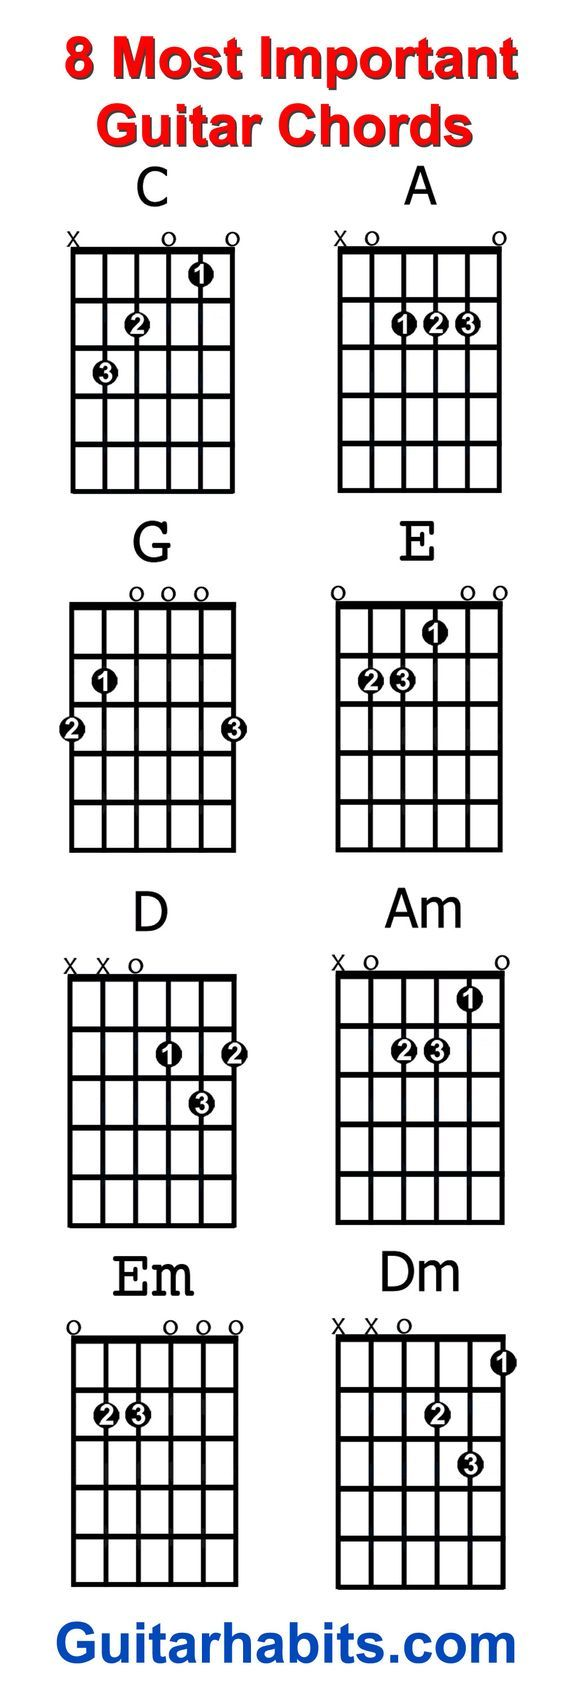 17+ ideas about Guitar Chords For Beginners on Pinterest ...